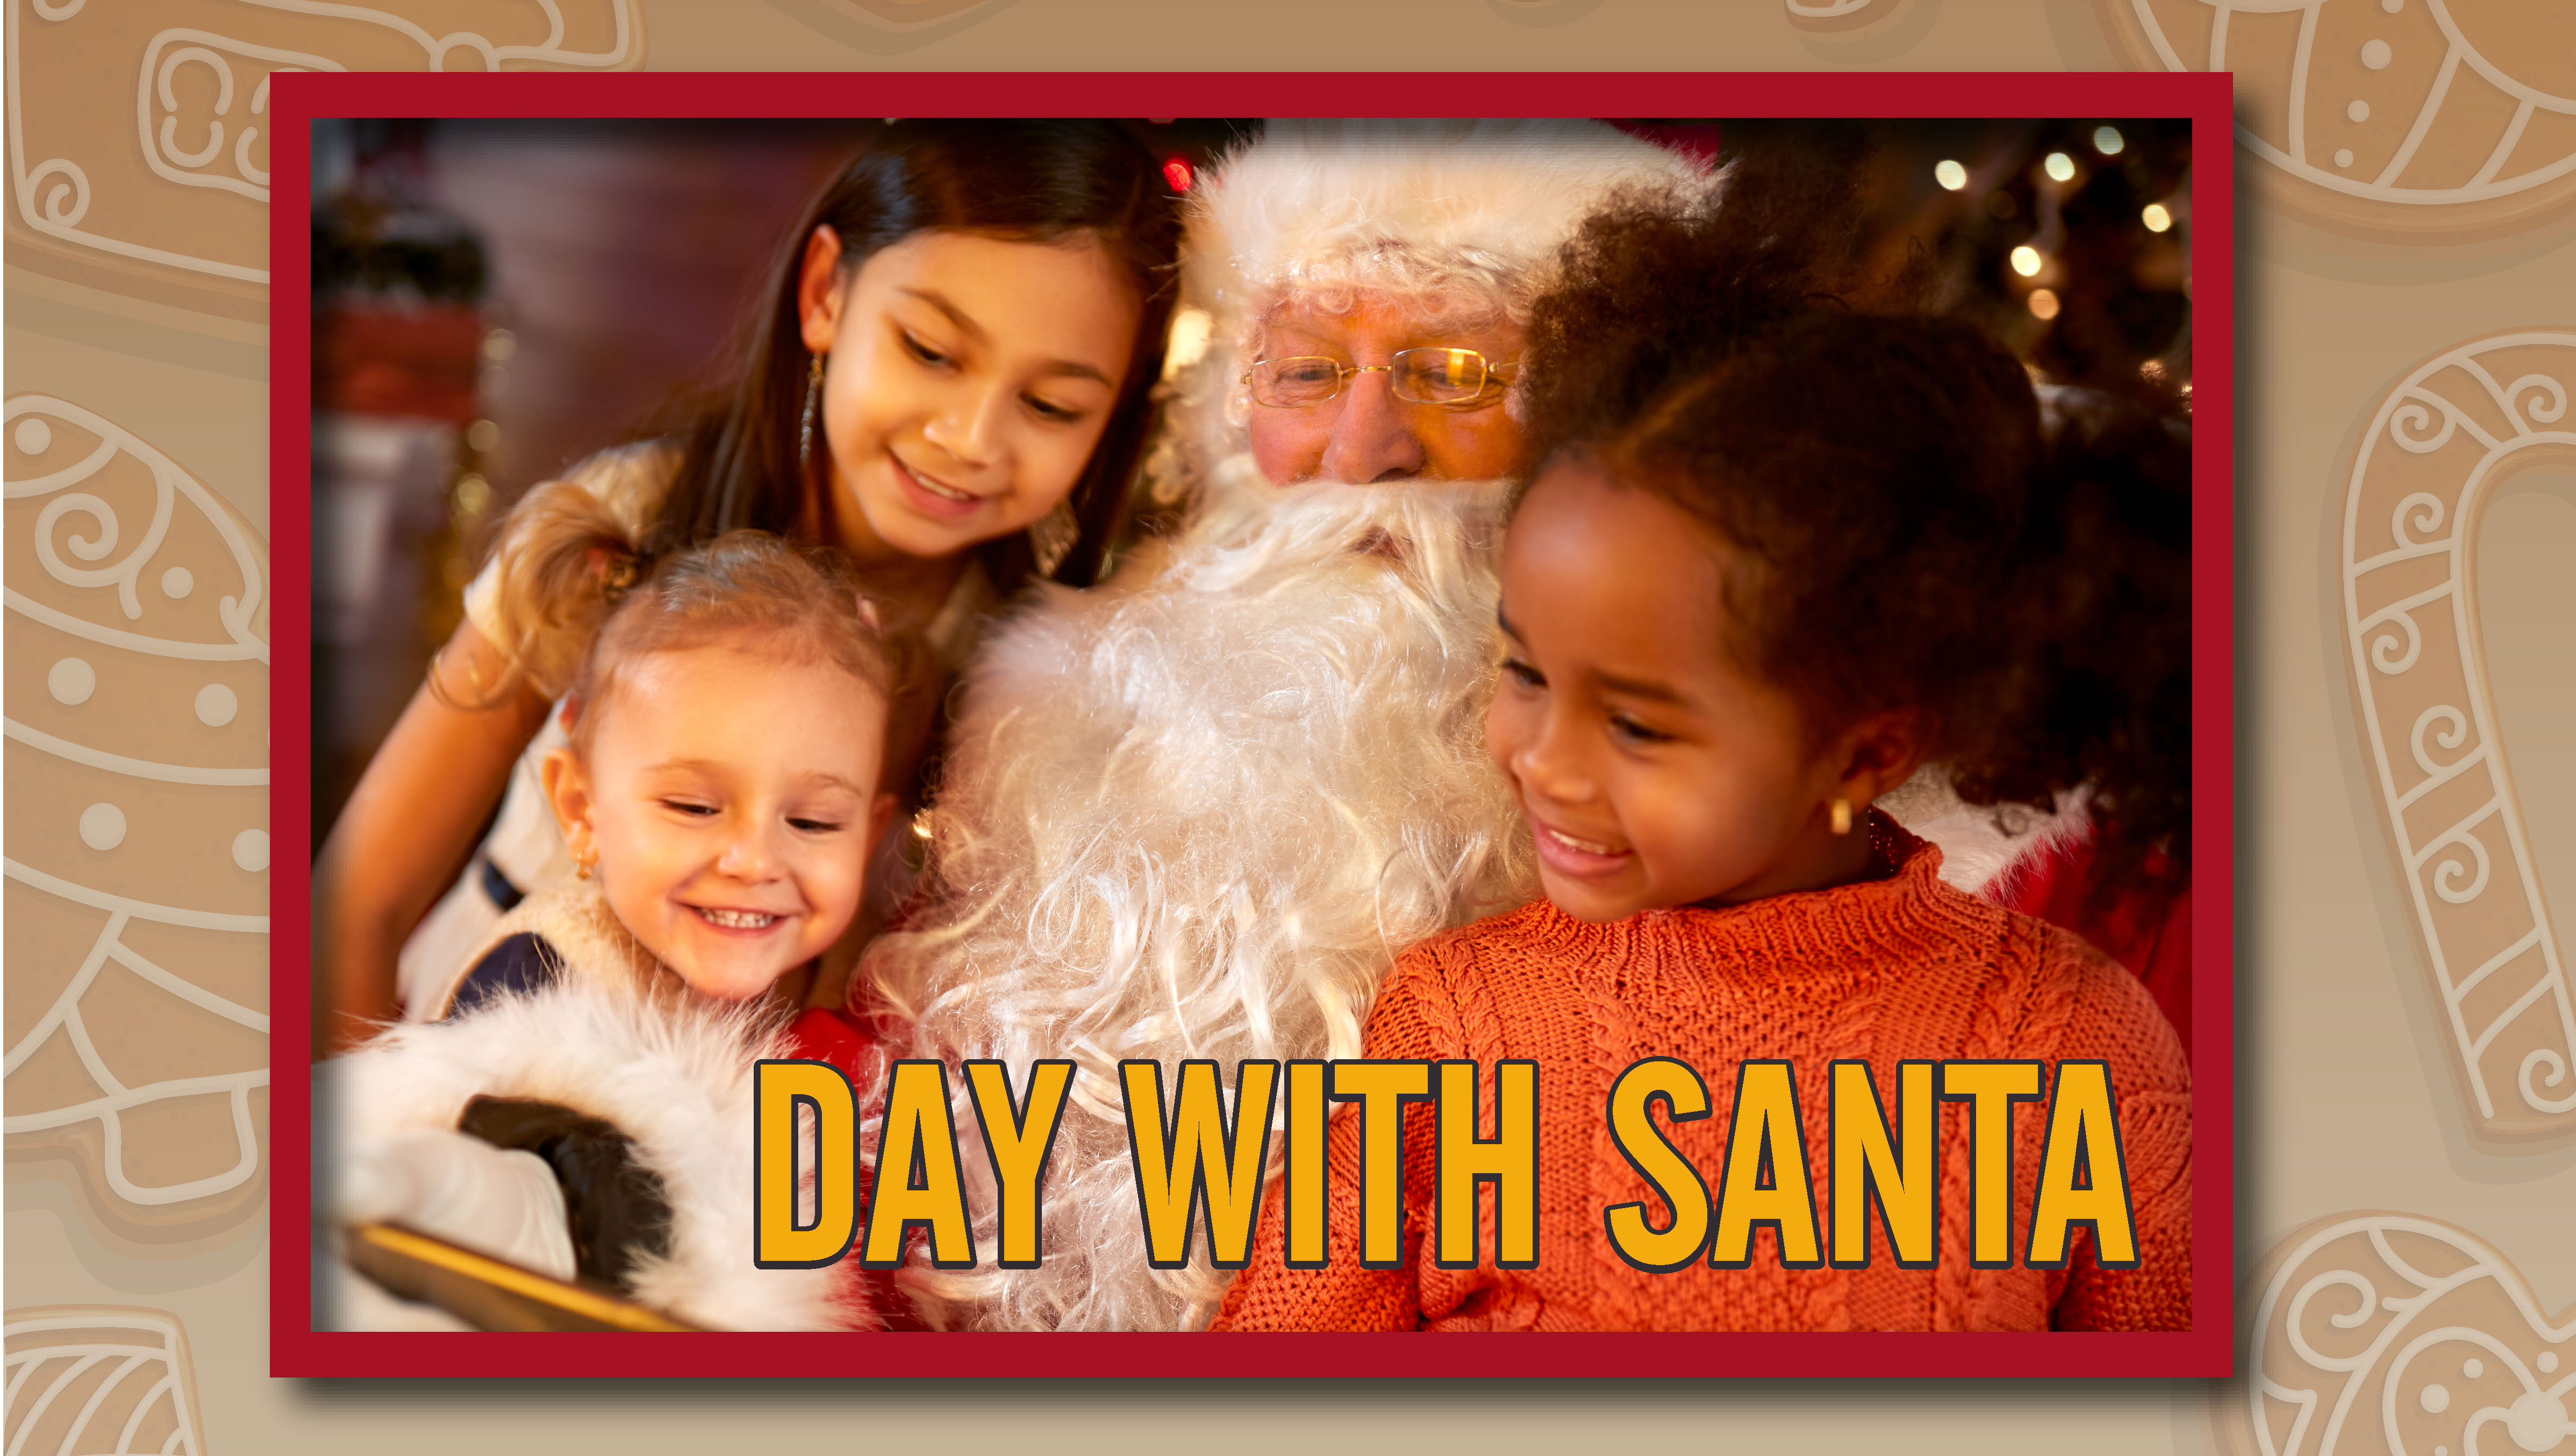 Day with Santa